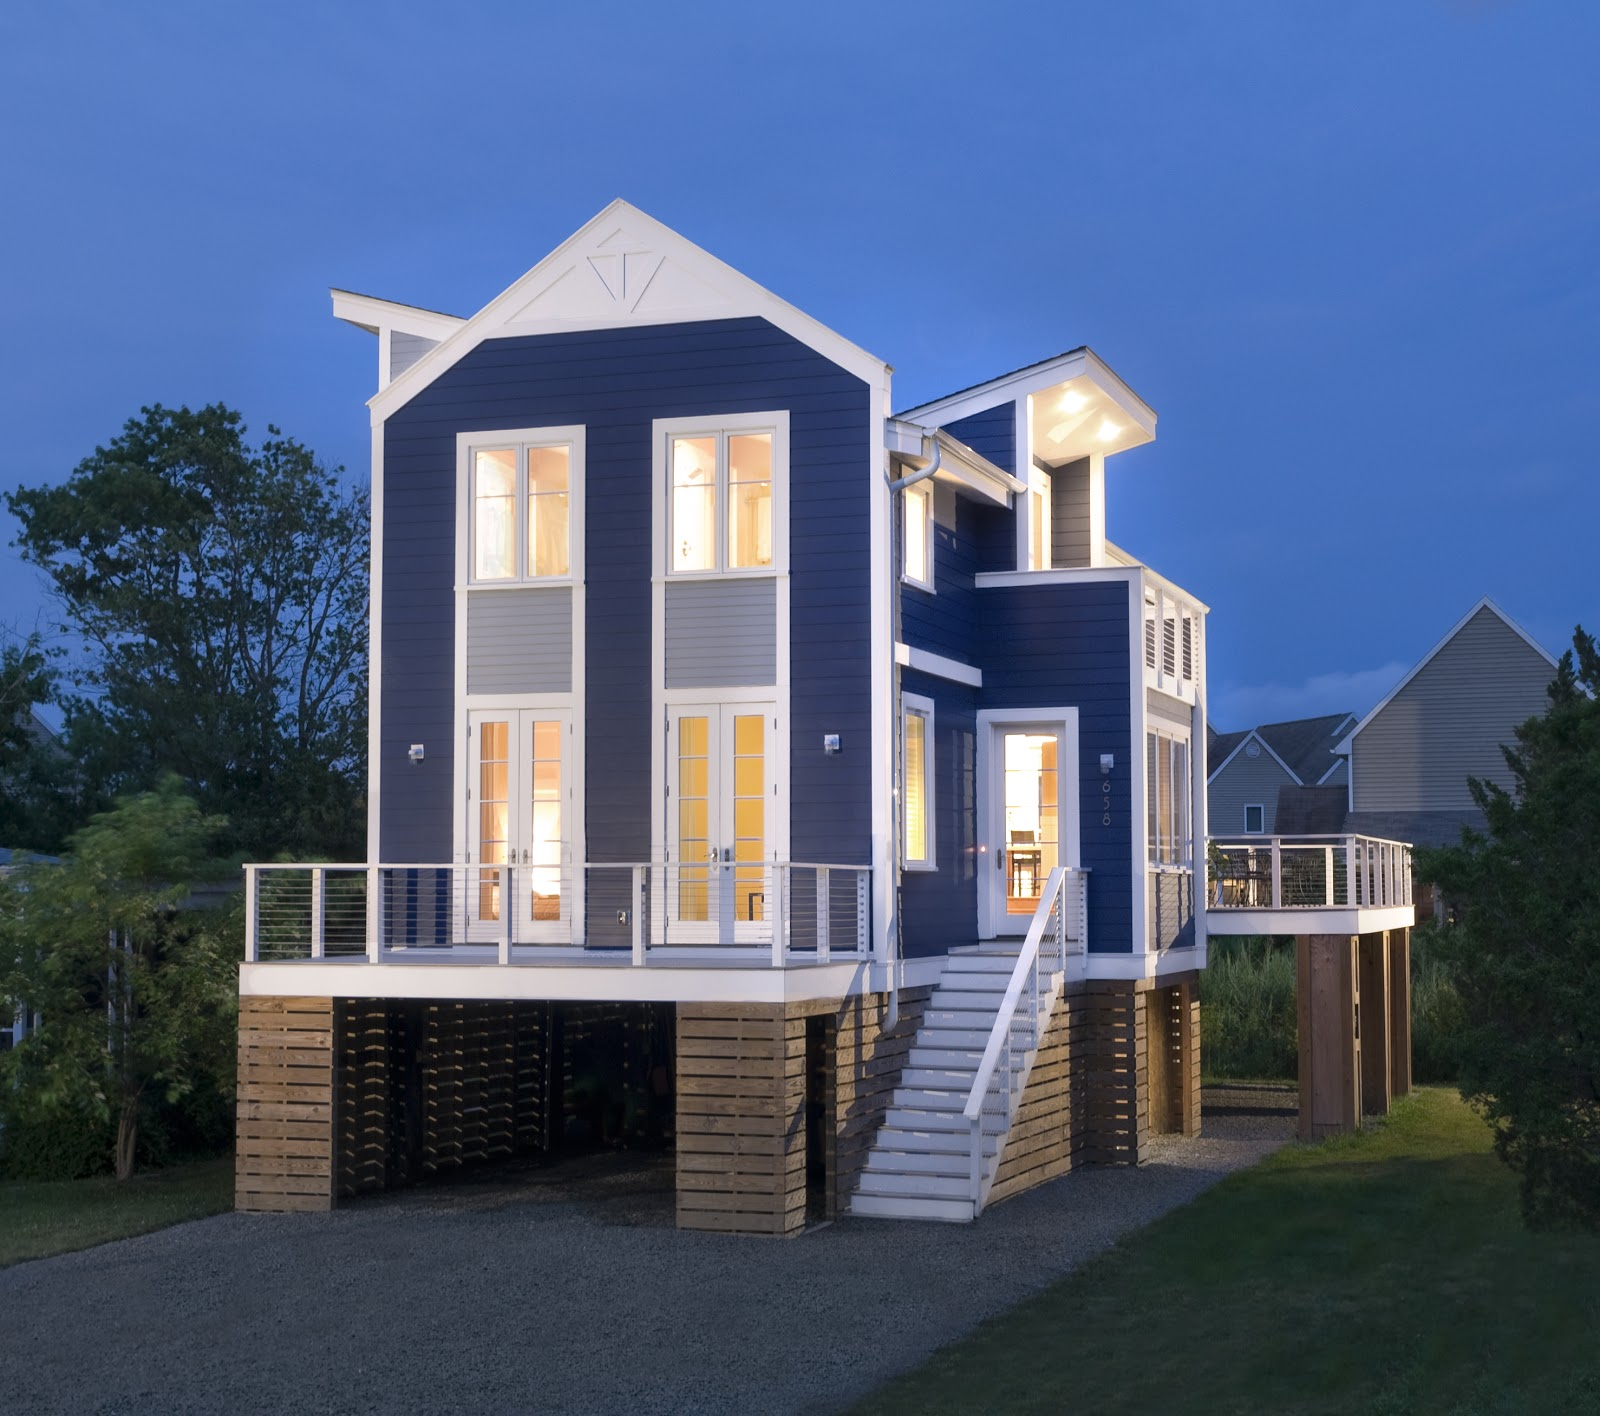 The new beach house two pretty cool houses - Cool home builders designs ...